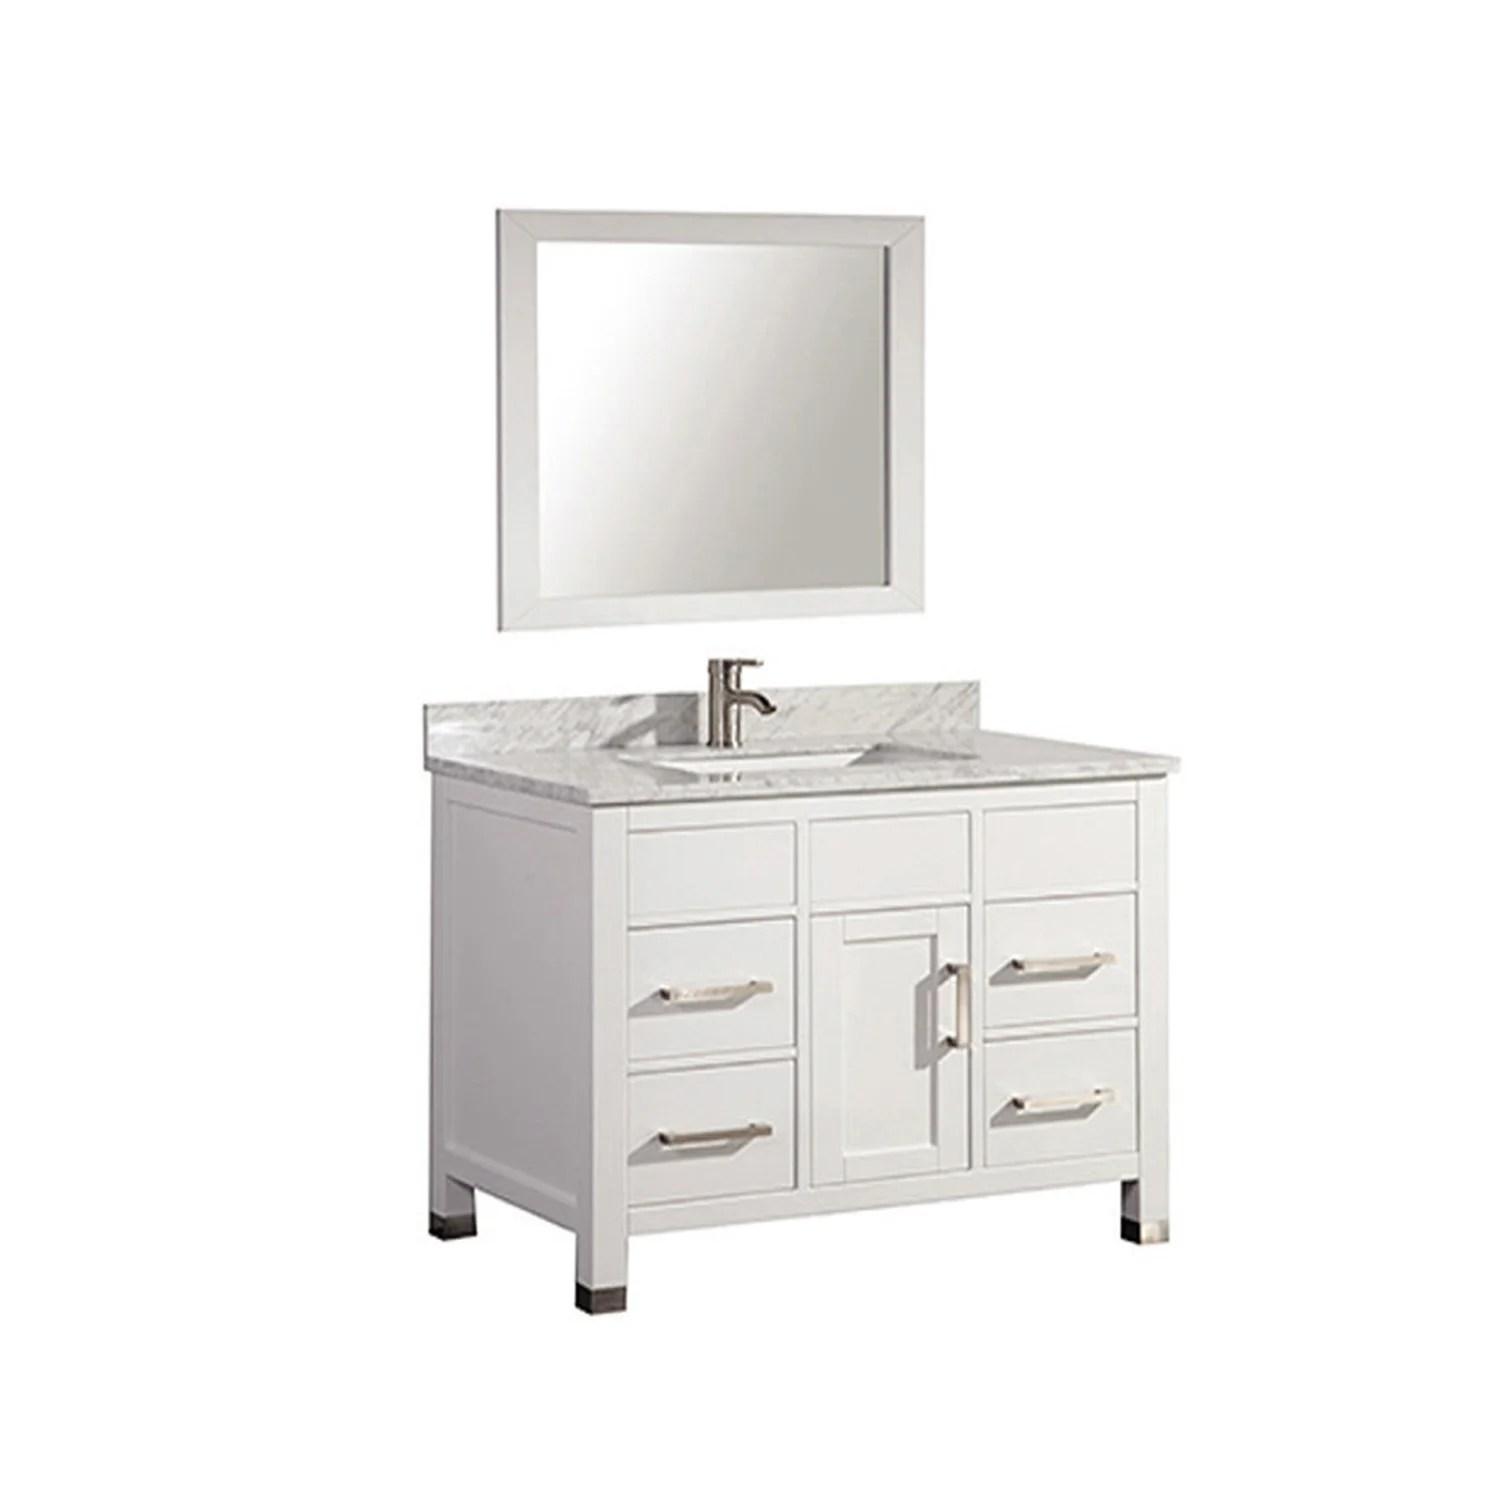 Mirrored Bathroom Vanity With Sink Mtdvanities Ricca 36 Quot Single Sink Bathroom Vanity Set With